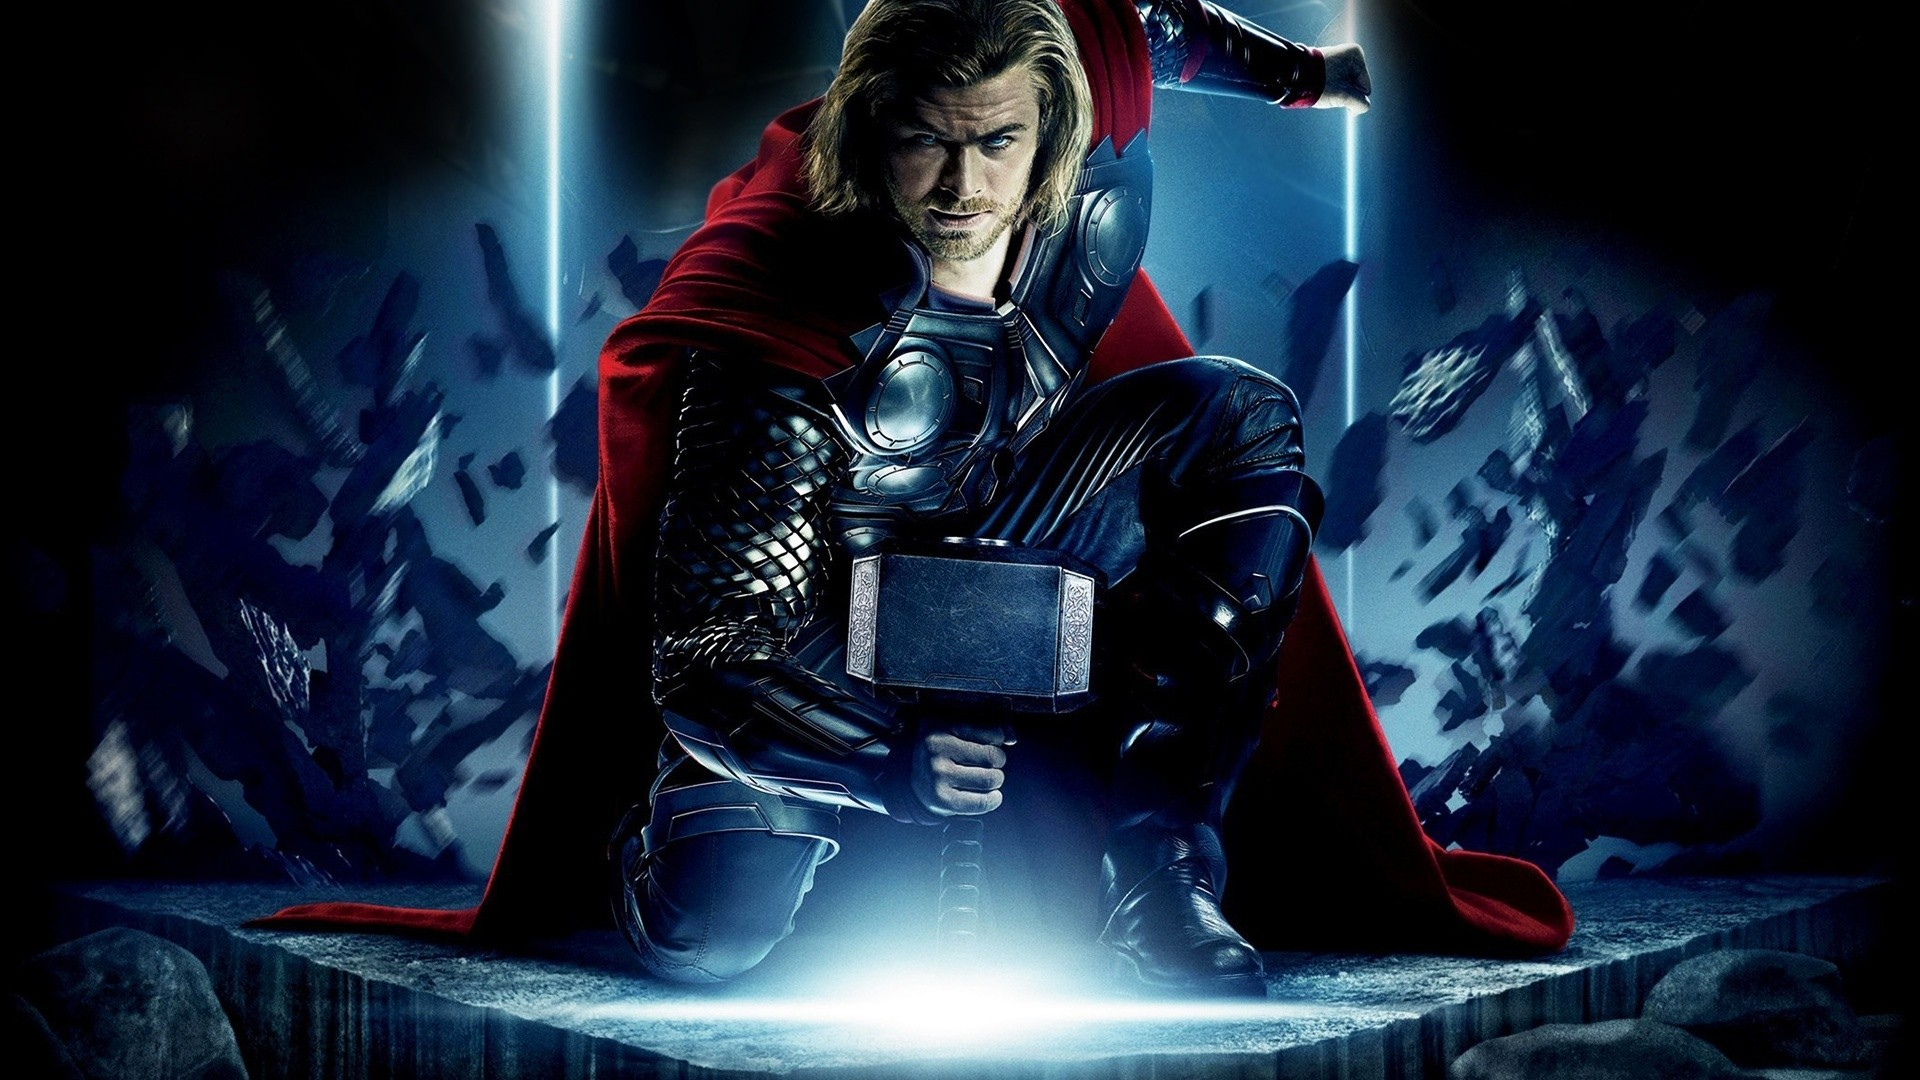 Thor Marvel Wallpaper 1920x1080 Thor Marvel Chris Hemsworth Thor 1920x1080